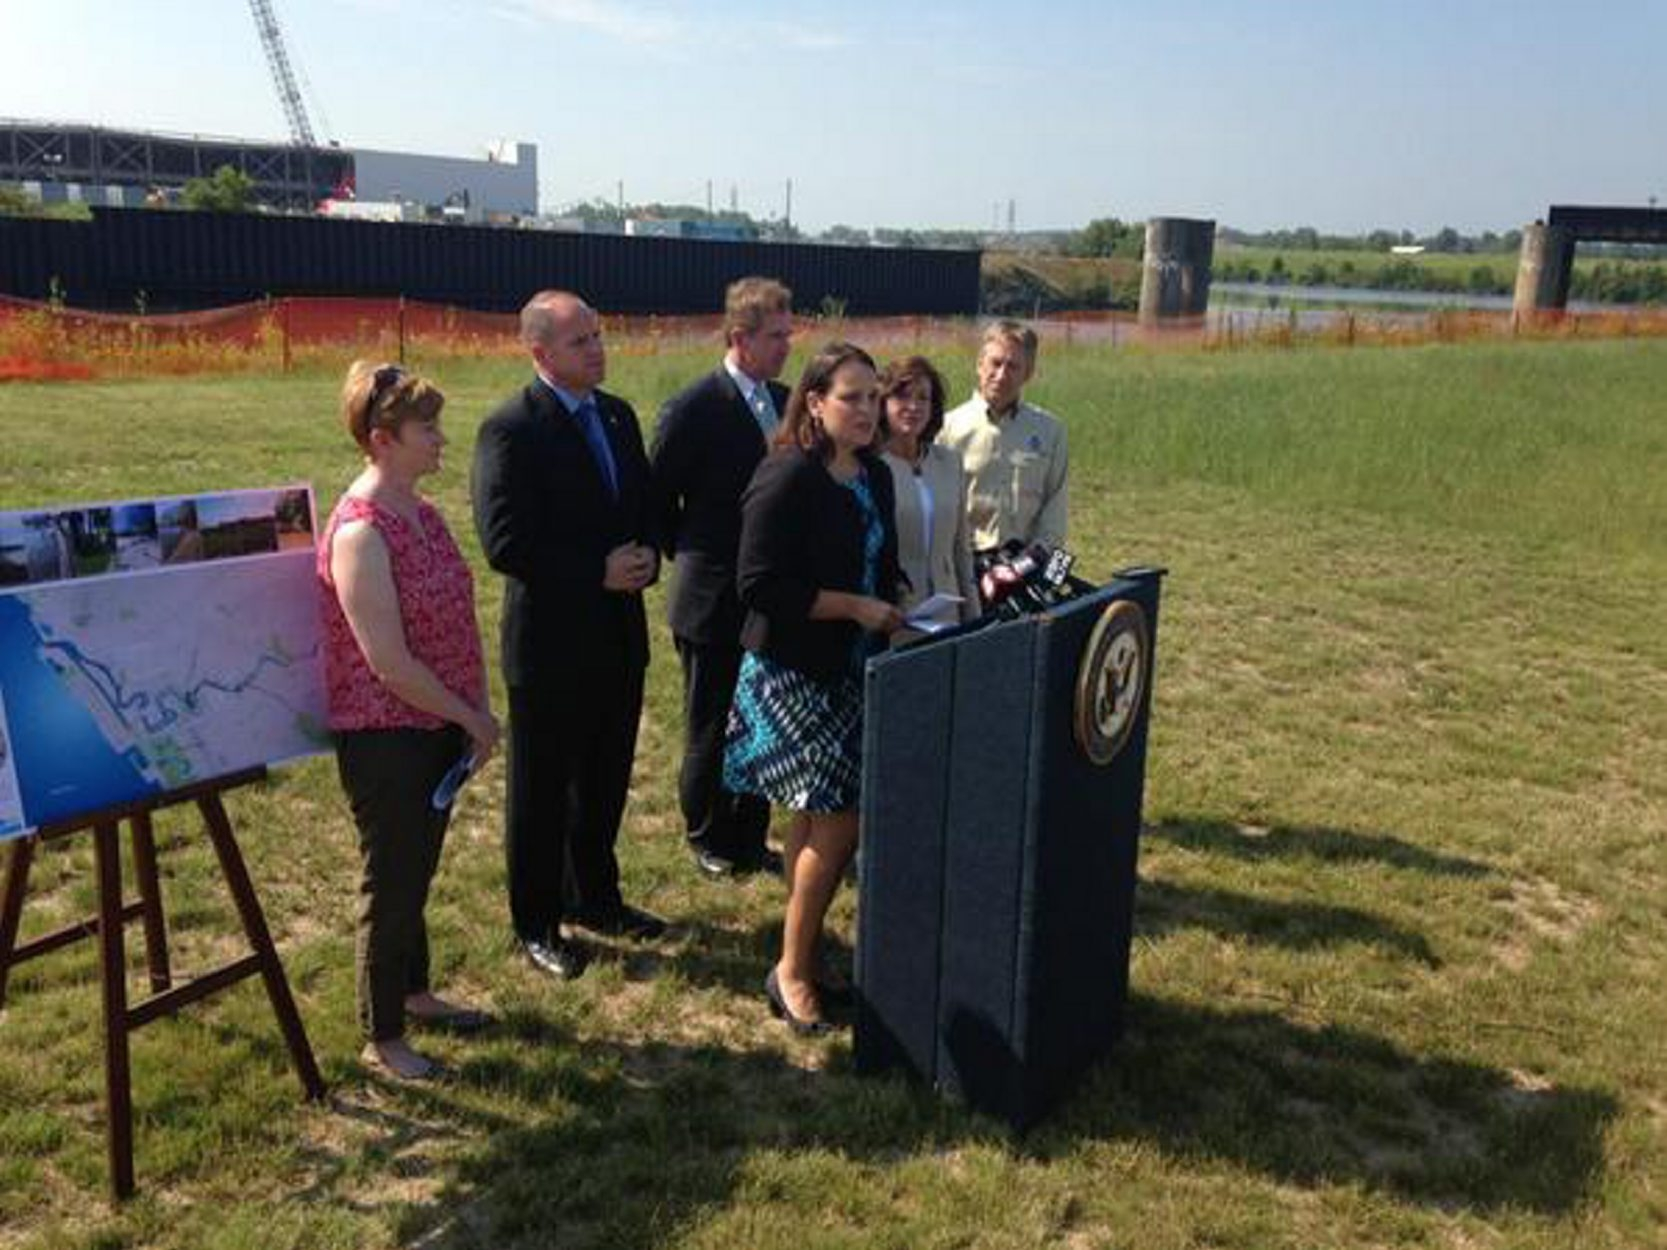 Officials at Monday's announcement of continuing Buffalo River project. (John Hickey/Buffalo News)